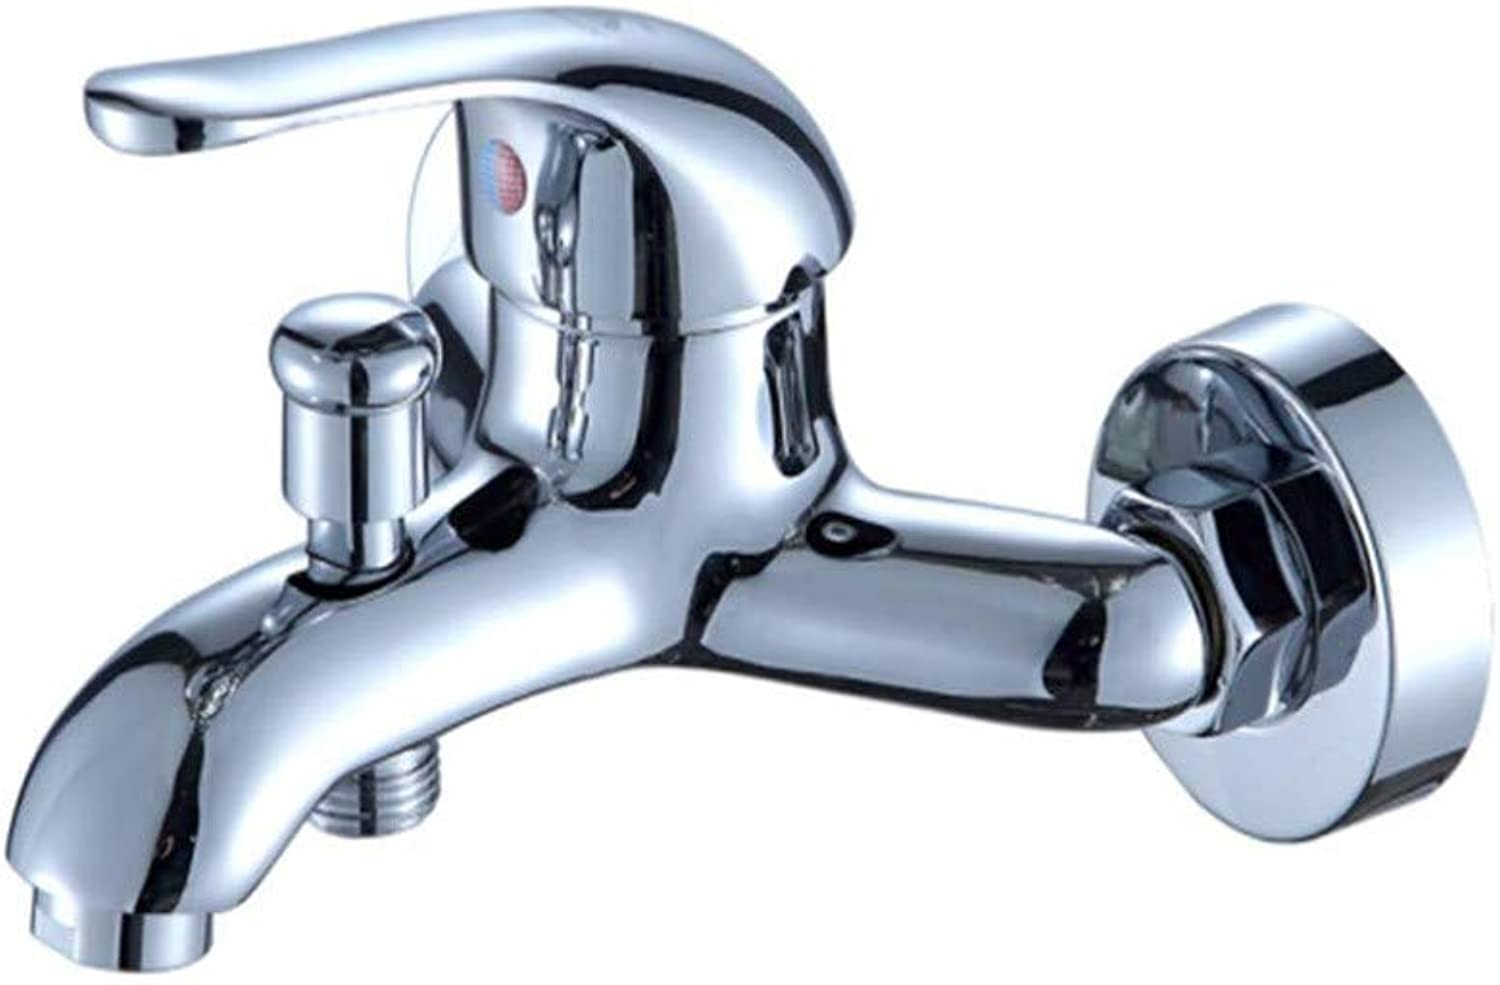 Water Tapdrinking Designer Archbathroom Copper Hot and Cold Bathtub Faucet